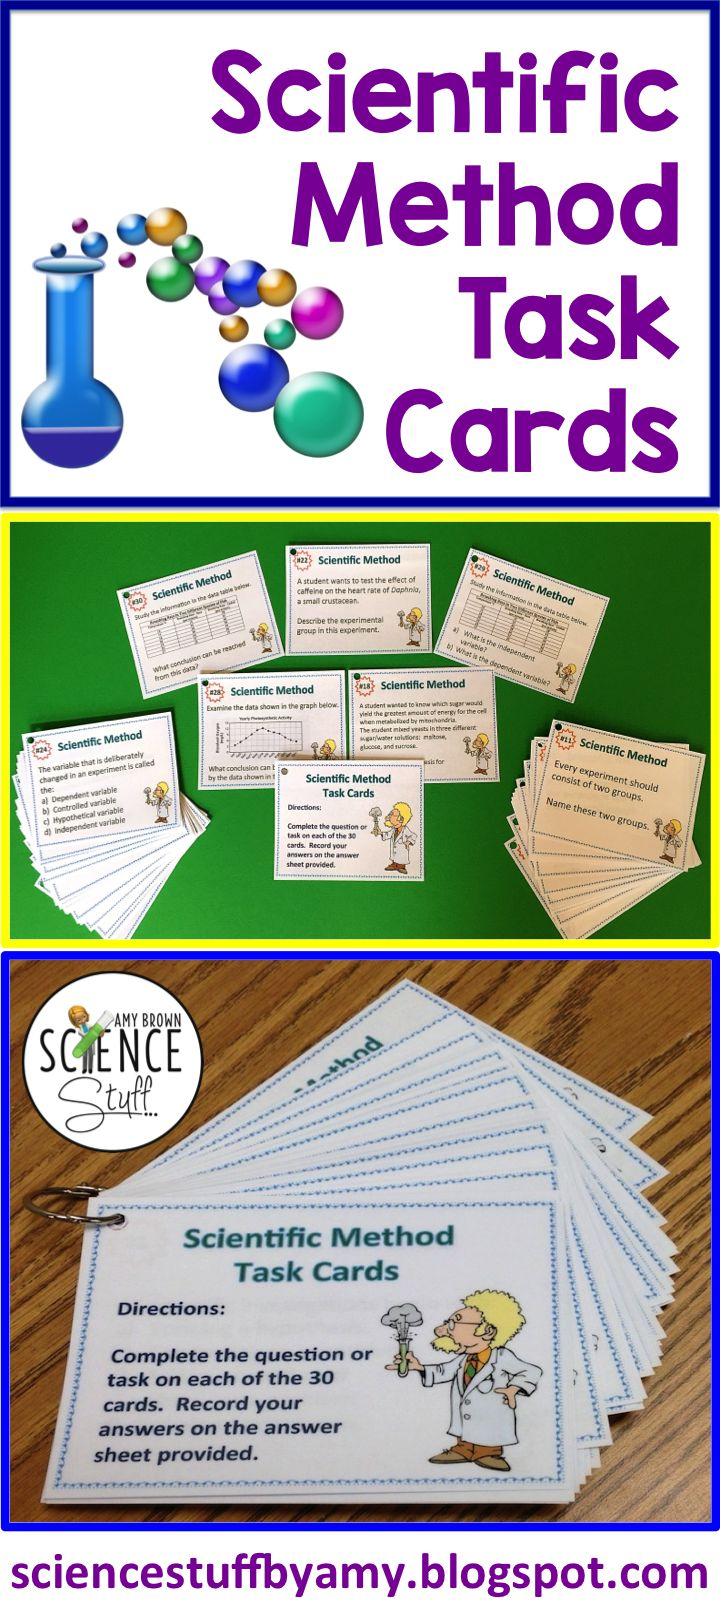 Make sure that the student can actually APPLY the scientific method, and not just memorize the steps.  These task cards are a fantastic way to reinforce lessons, review difficult concepts, or provide extra practice for the struggling student on the scientific method.